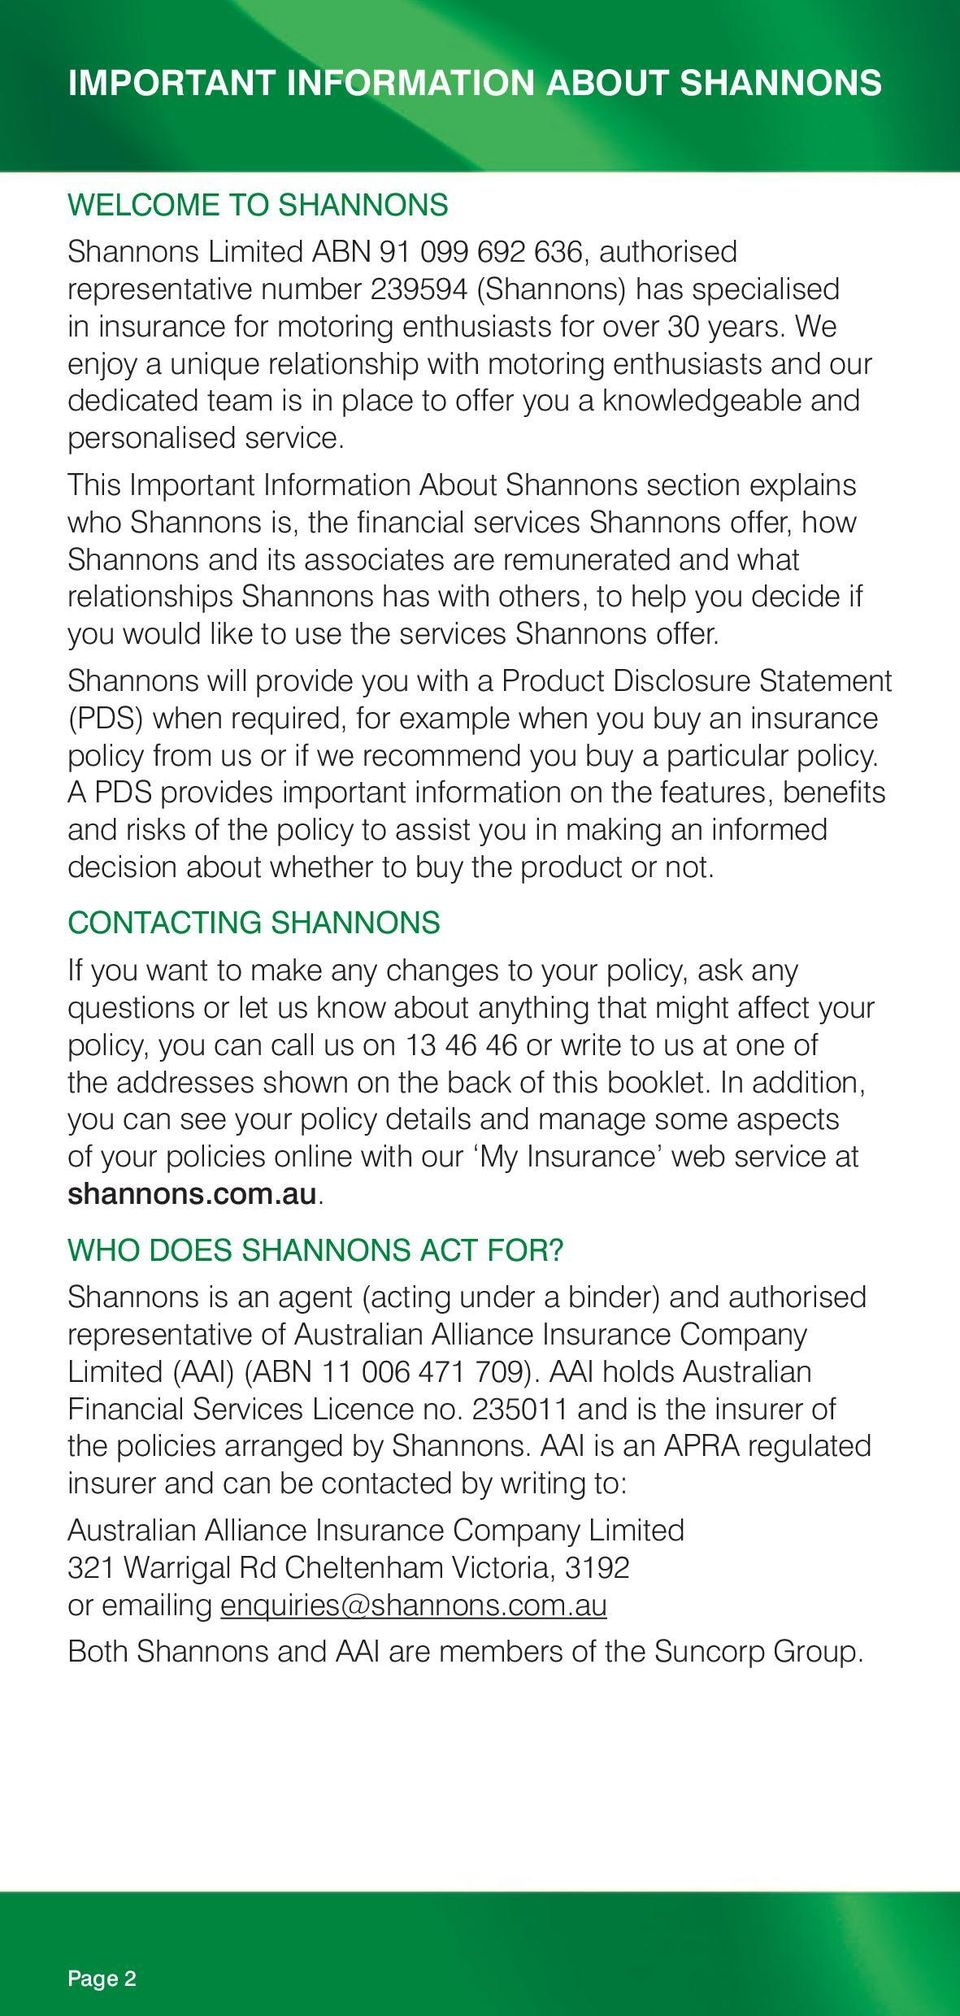 This Important Information About Shannons section explains who Shannons is, the financial services Shannons offer, how Shannons and its associates are remunerated and what relationships Shannons has